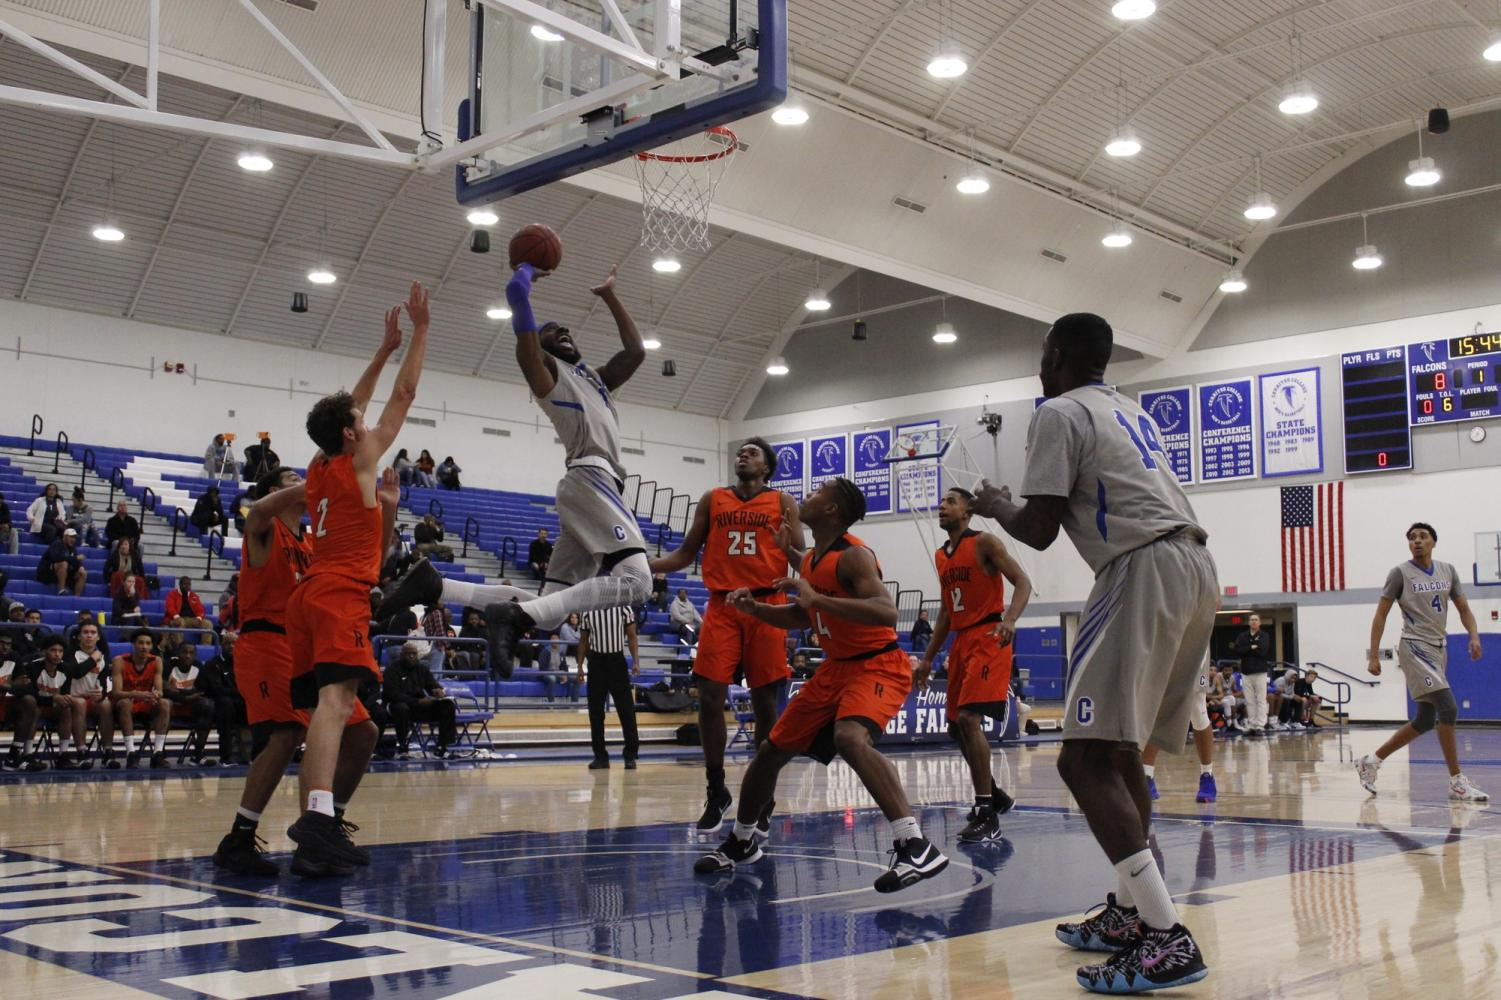 No. 1 Demetrius Thomas, the reigning South Coast Conference Player of the Year, goes hard to the basket. Thomas played 54 minutes in Friday's game, as he totaled 25 points and 14 rebounds, for an MVP worthy showing.